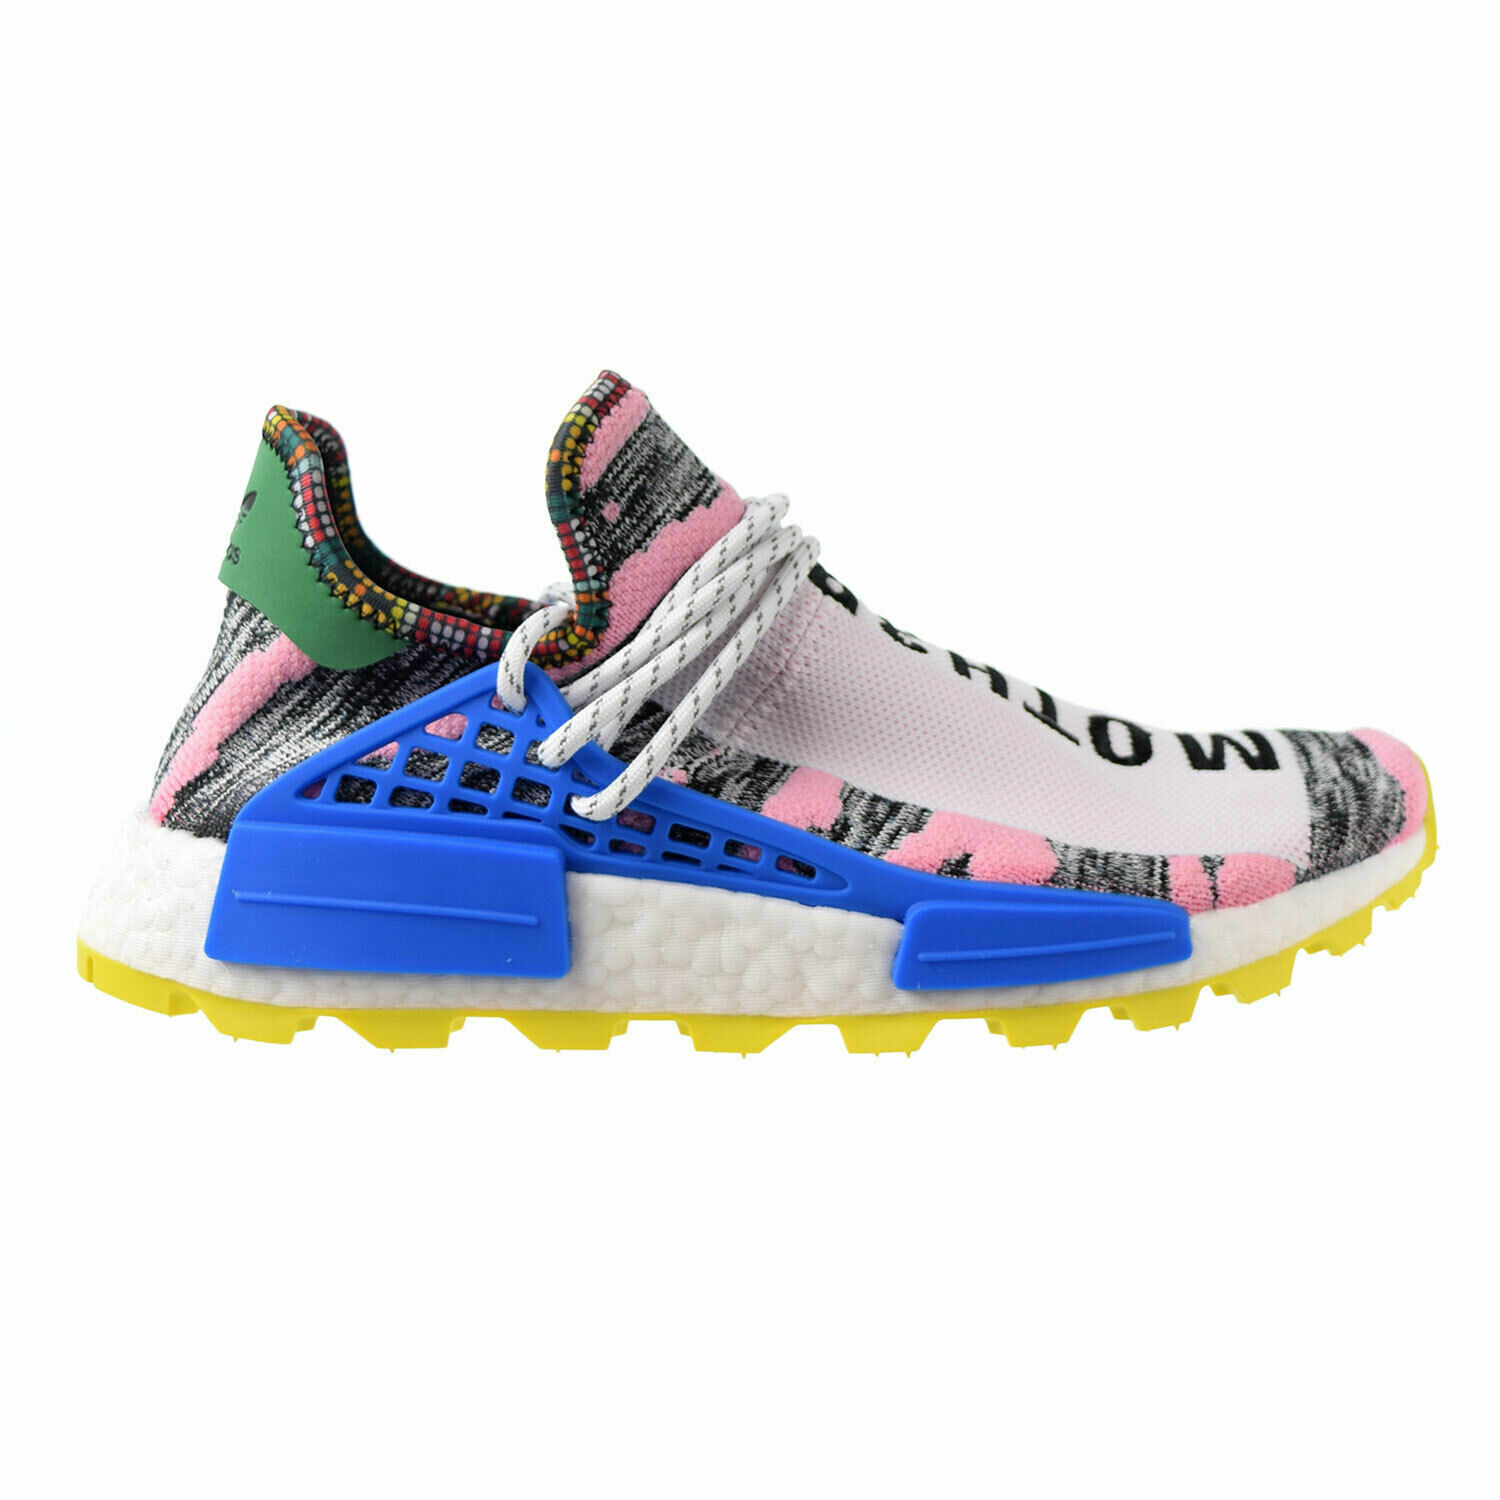 competitive price d74c1 7186a {BB9531} Adidas x PW Solar Pack Hu NMD Pharrell Williams Human Race Mother  *NEW*